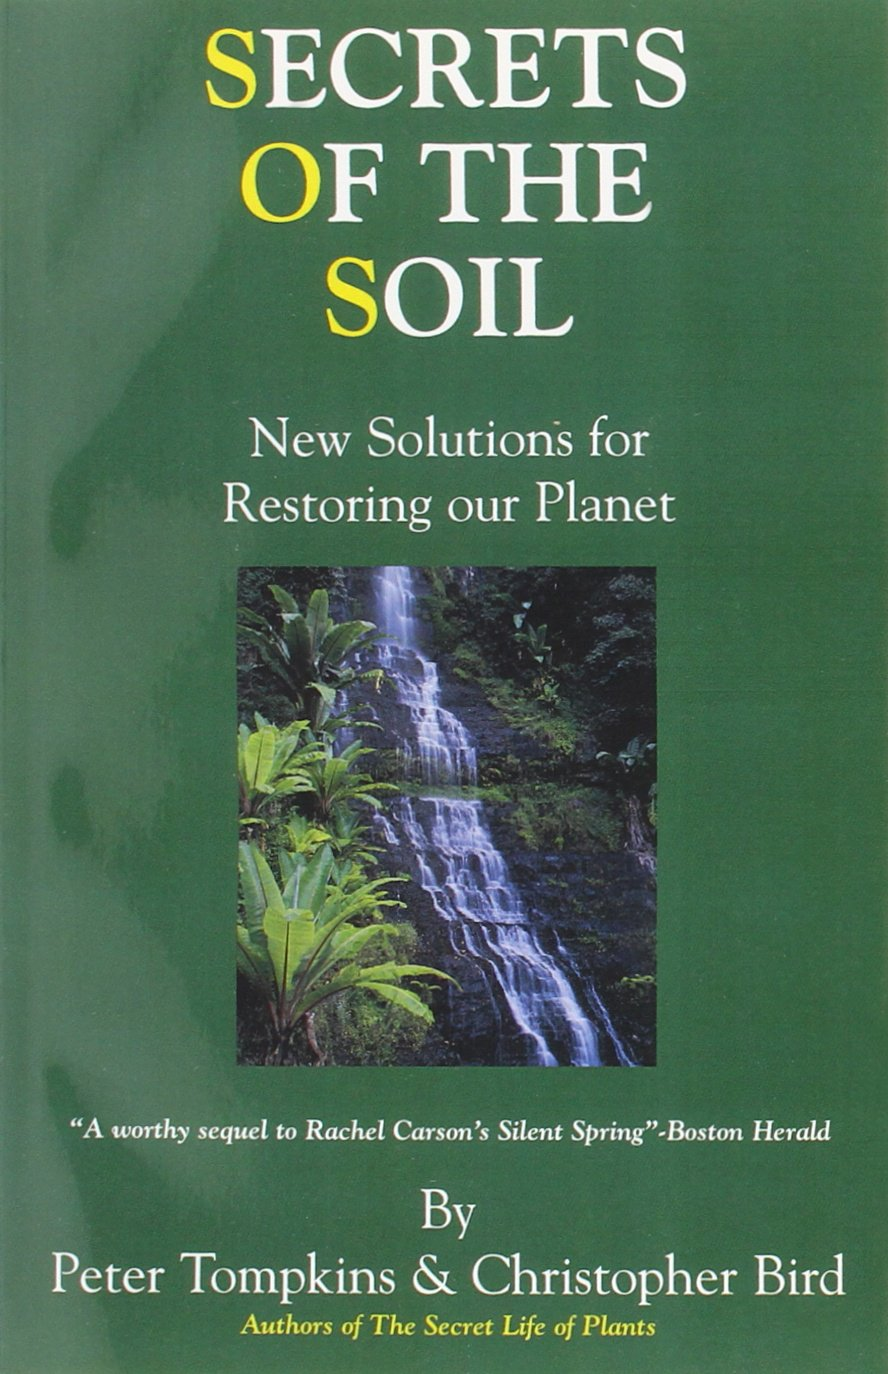 Secrets of the Soil : New Solutions for Restoring Our Planet Paperback by Peter Tompkins (Author), Christopher Bird